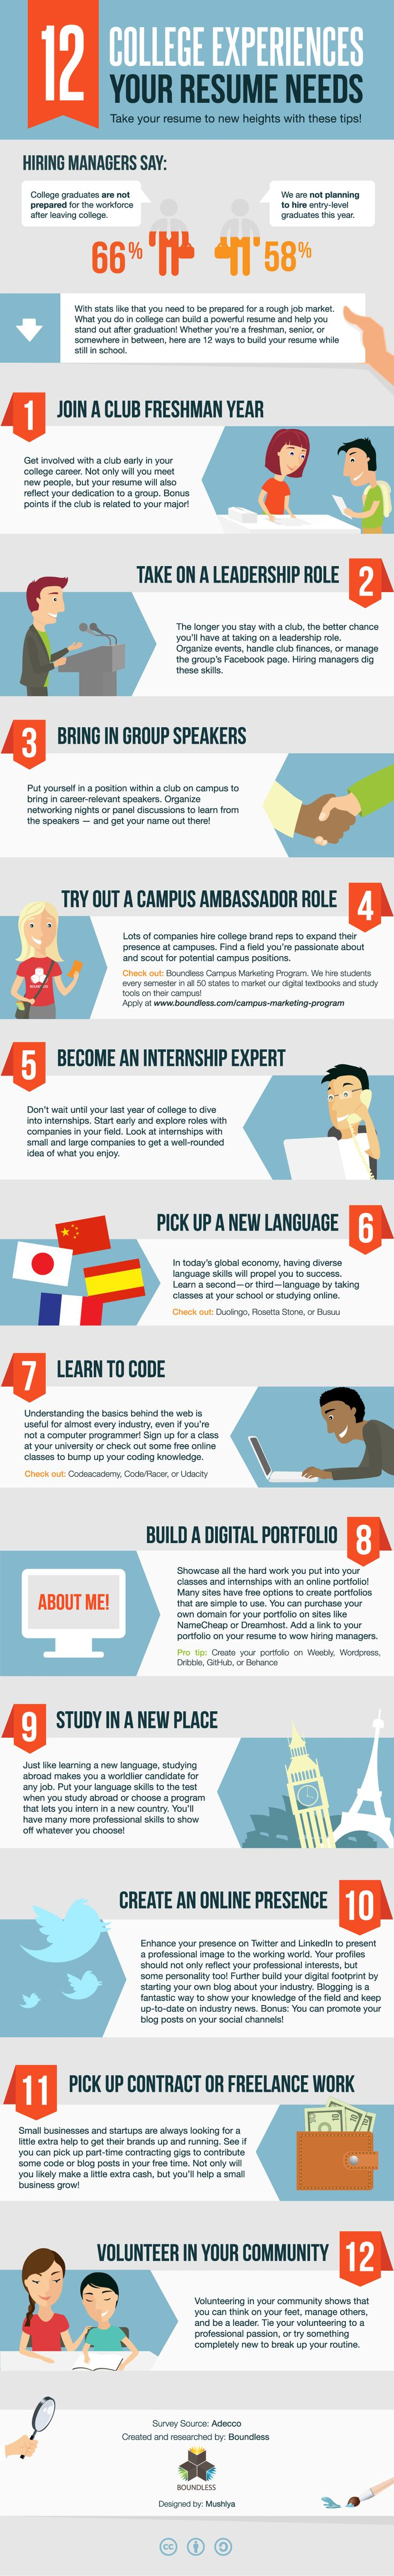 12 college experiences you need to have on your resume infographic